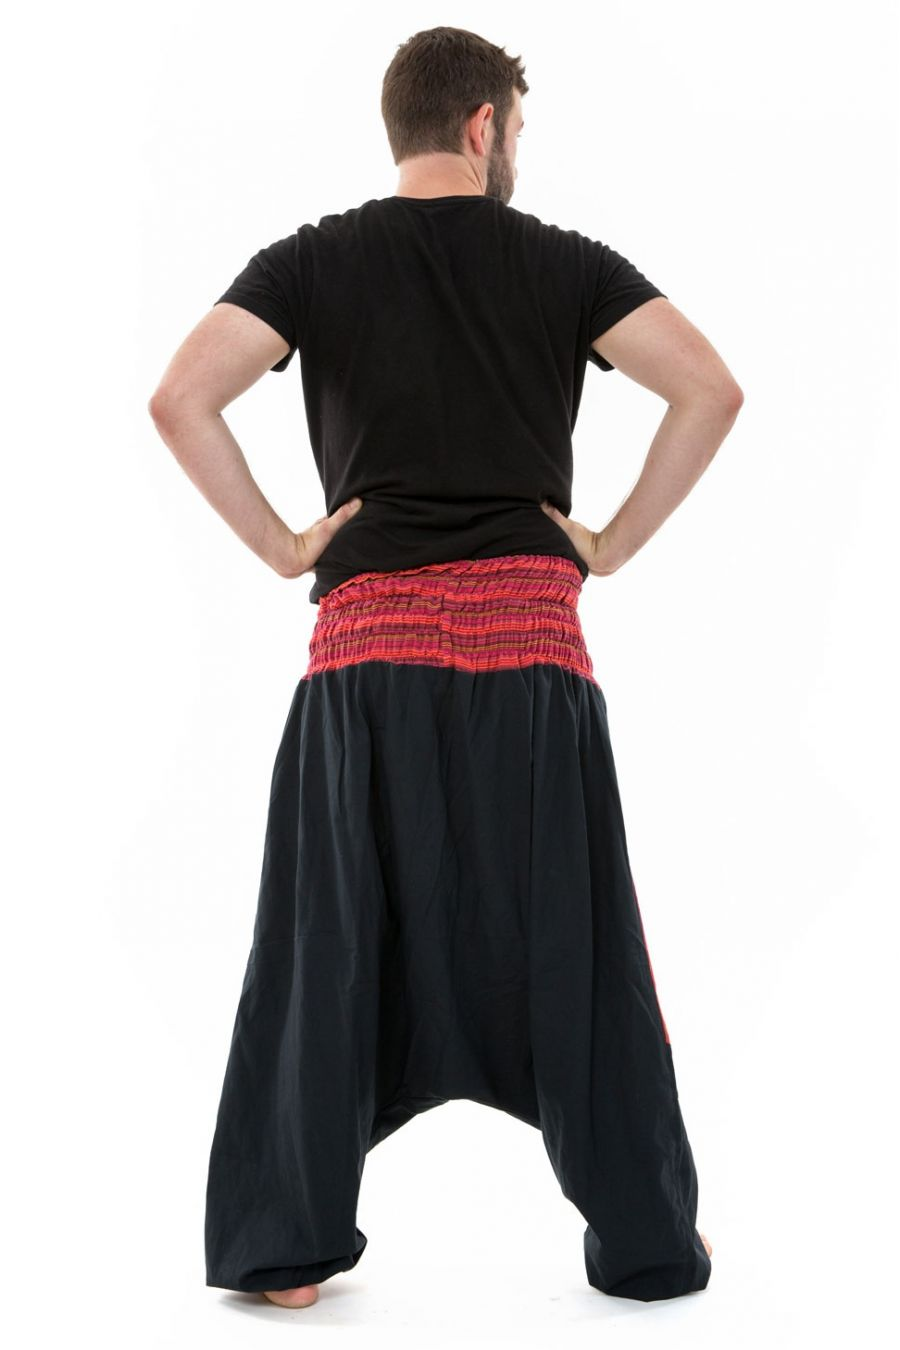 Plus Size Harem Pants. Stretchy Waist fits roughly between 32